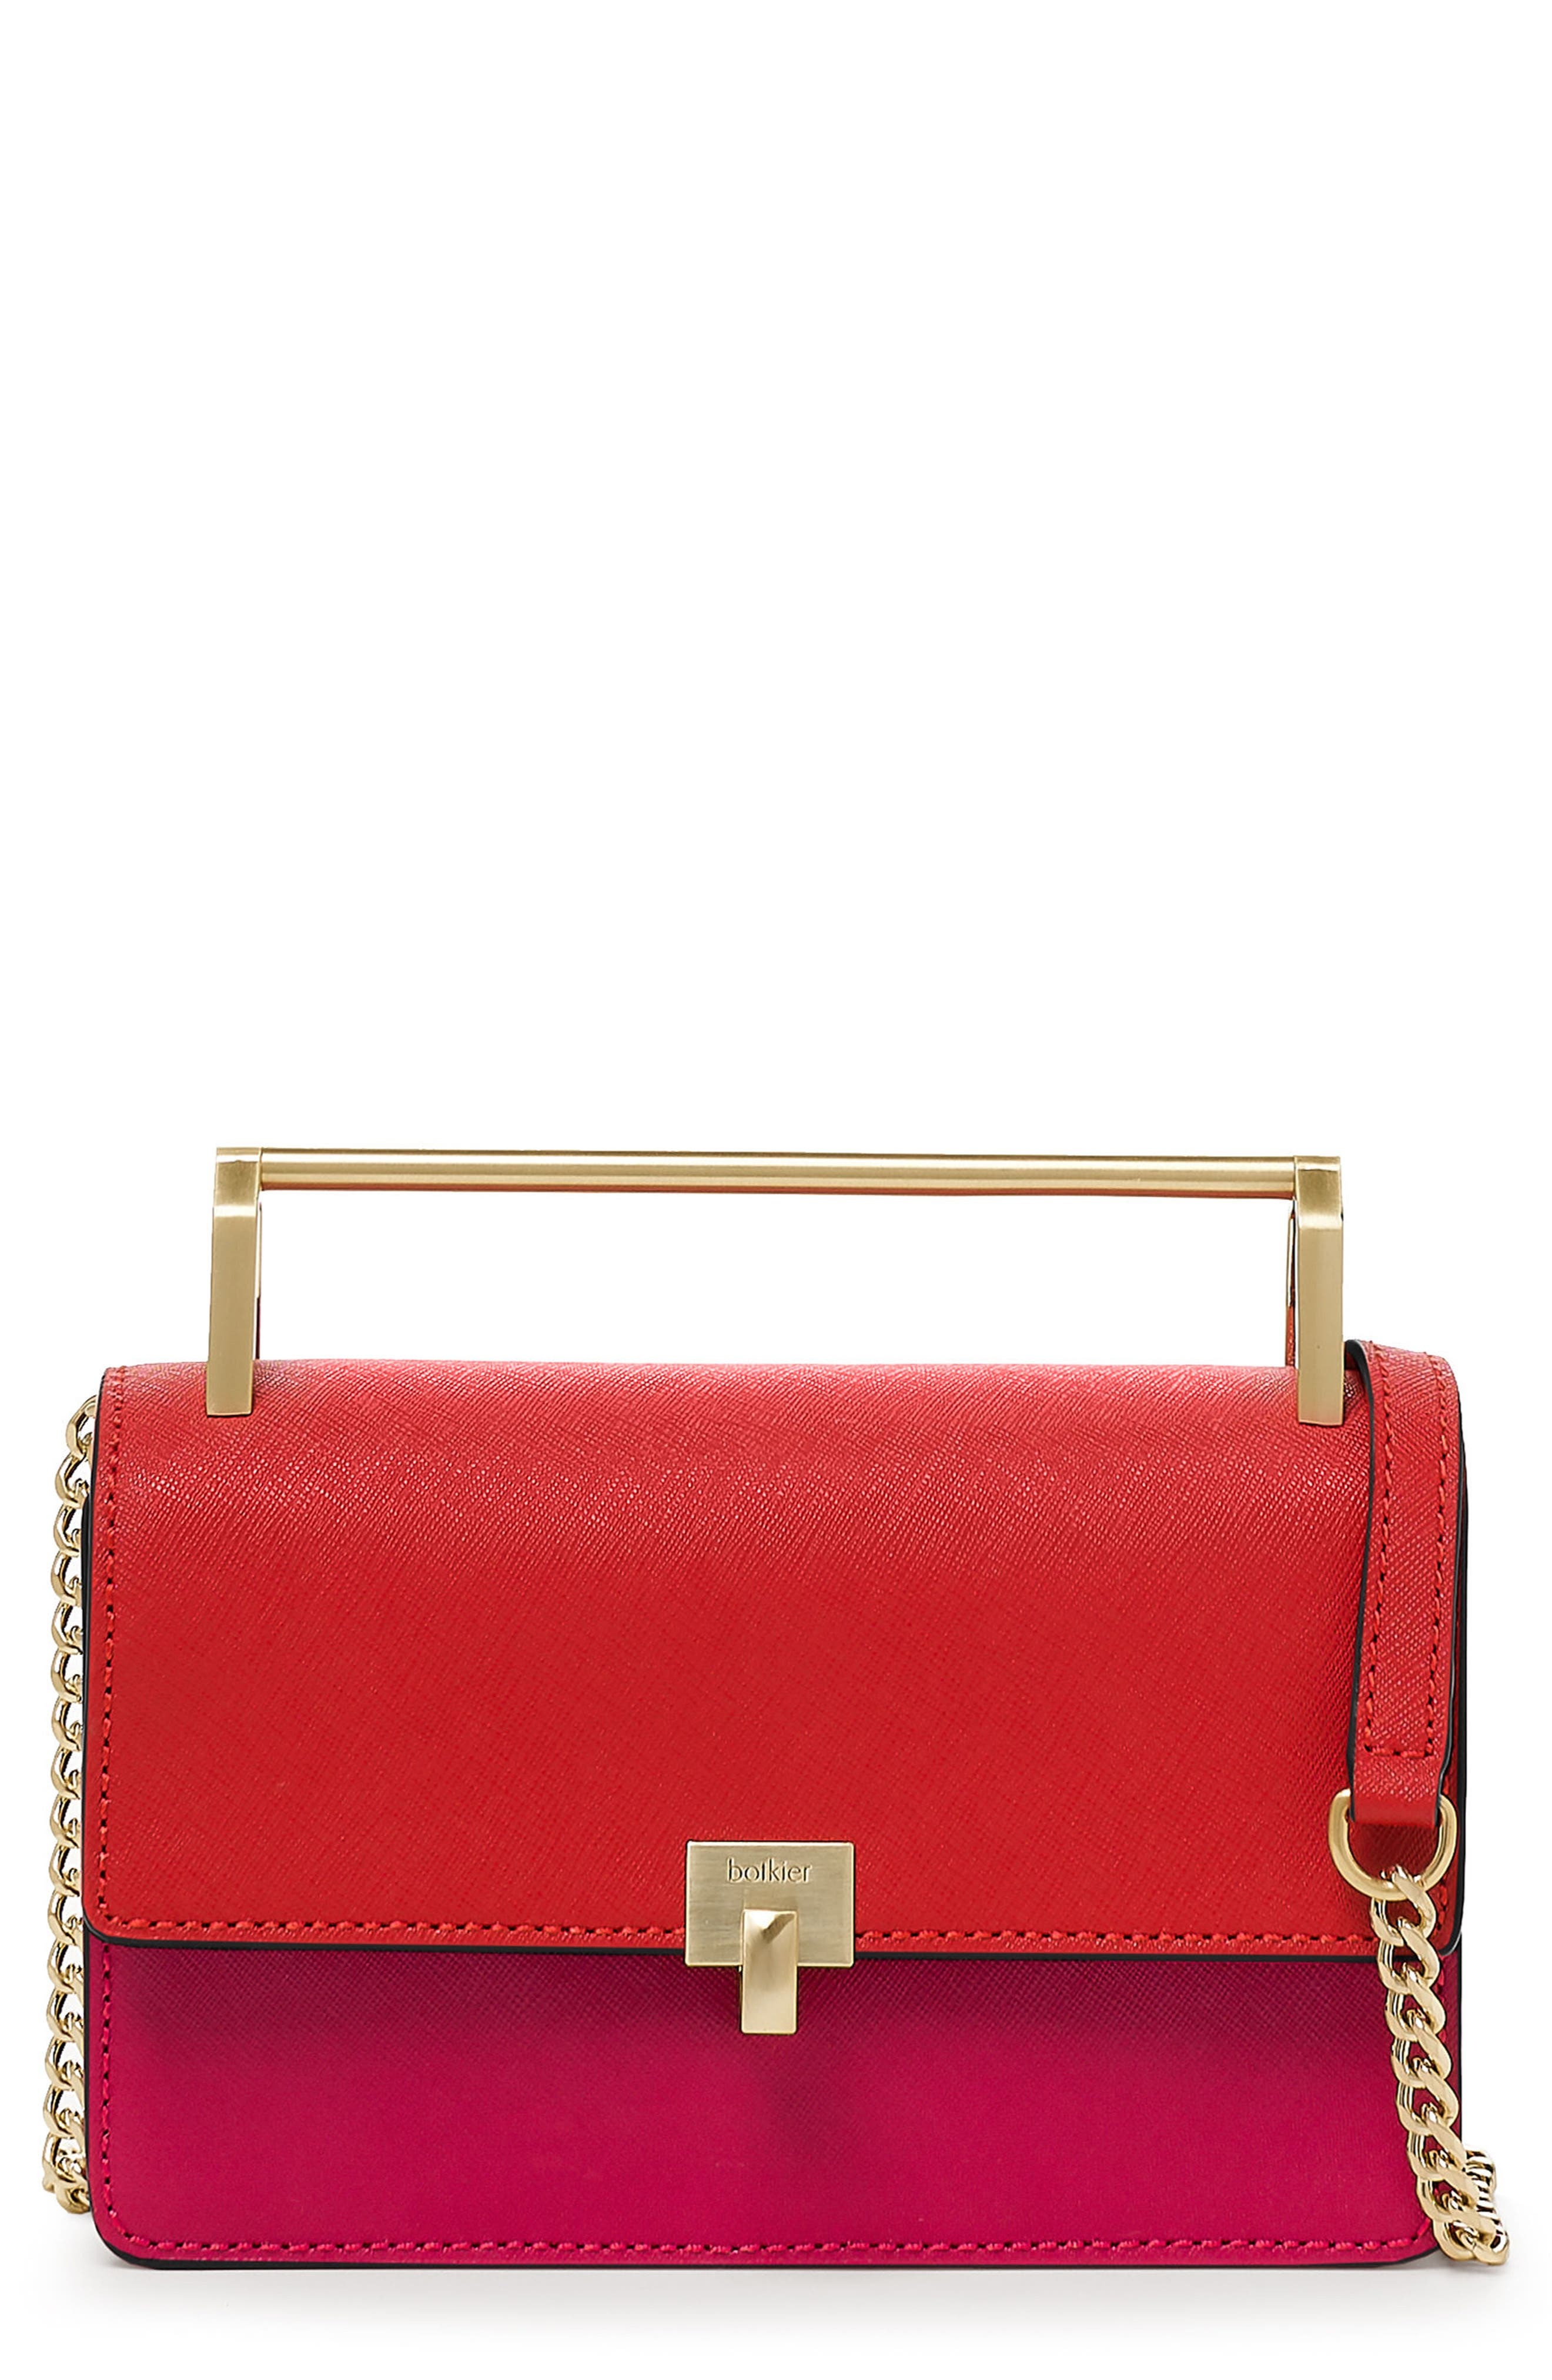 BOTKIER Lennox Leather Crossbody Bag - Red in Red Colorblock